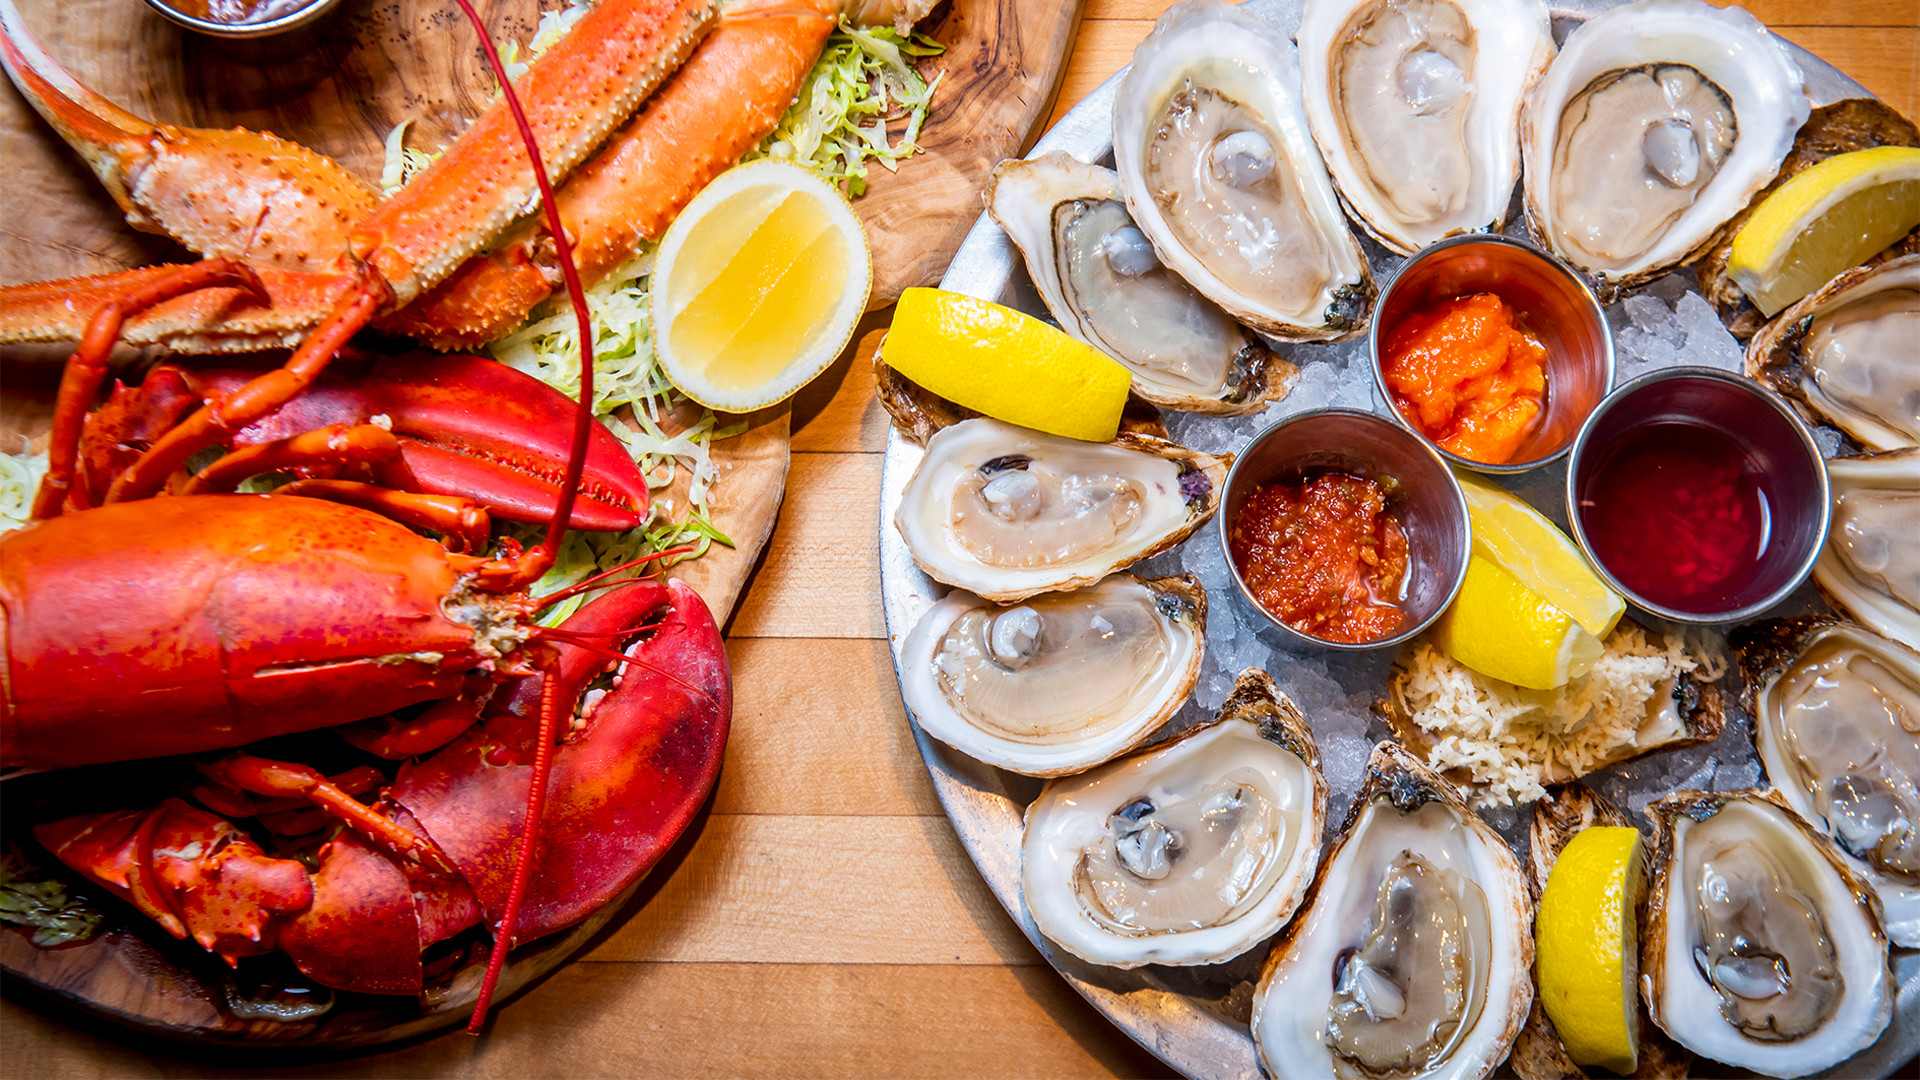 Restaurant supply chains: Lobster and oysters from Oyster Boy